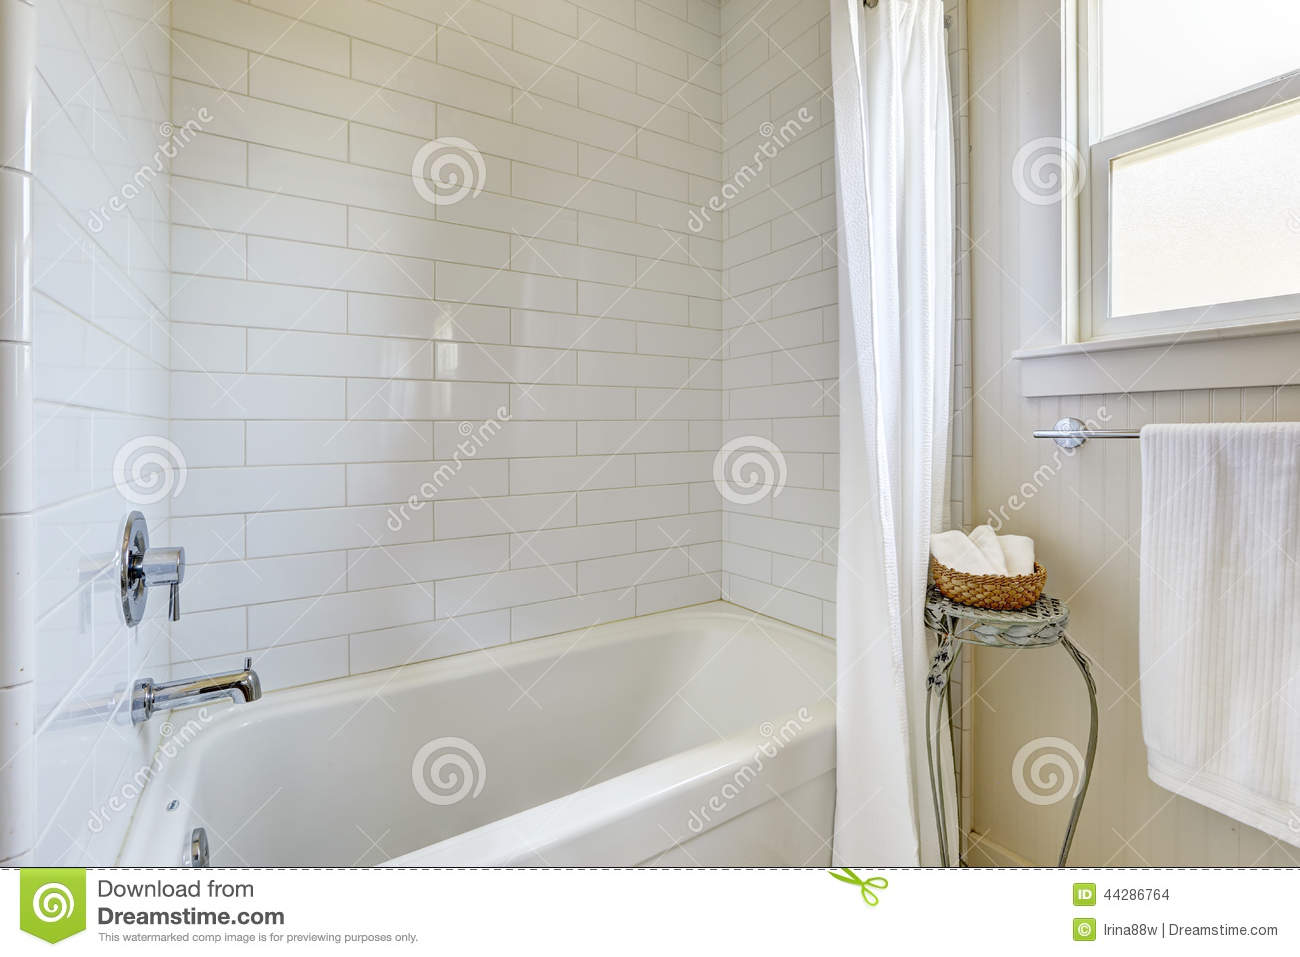 Simple Bathroom With Tile Wall Trim And Bath Tub Stock Photo - Image ...